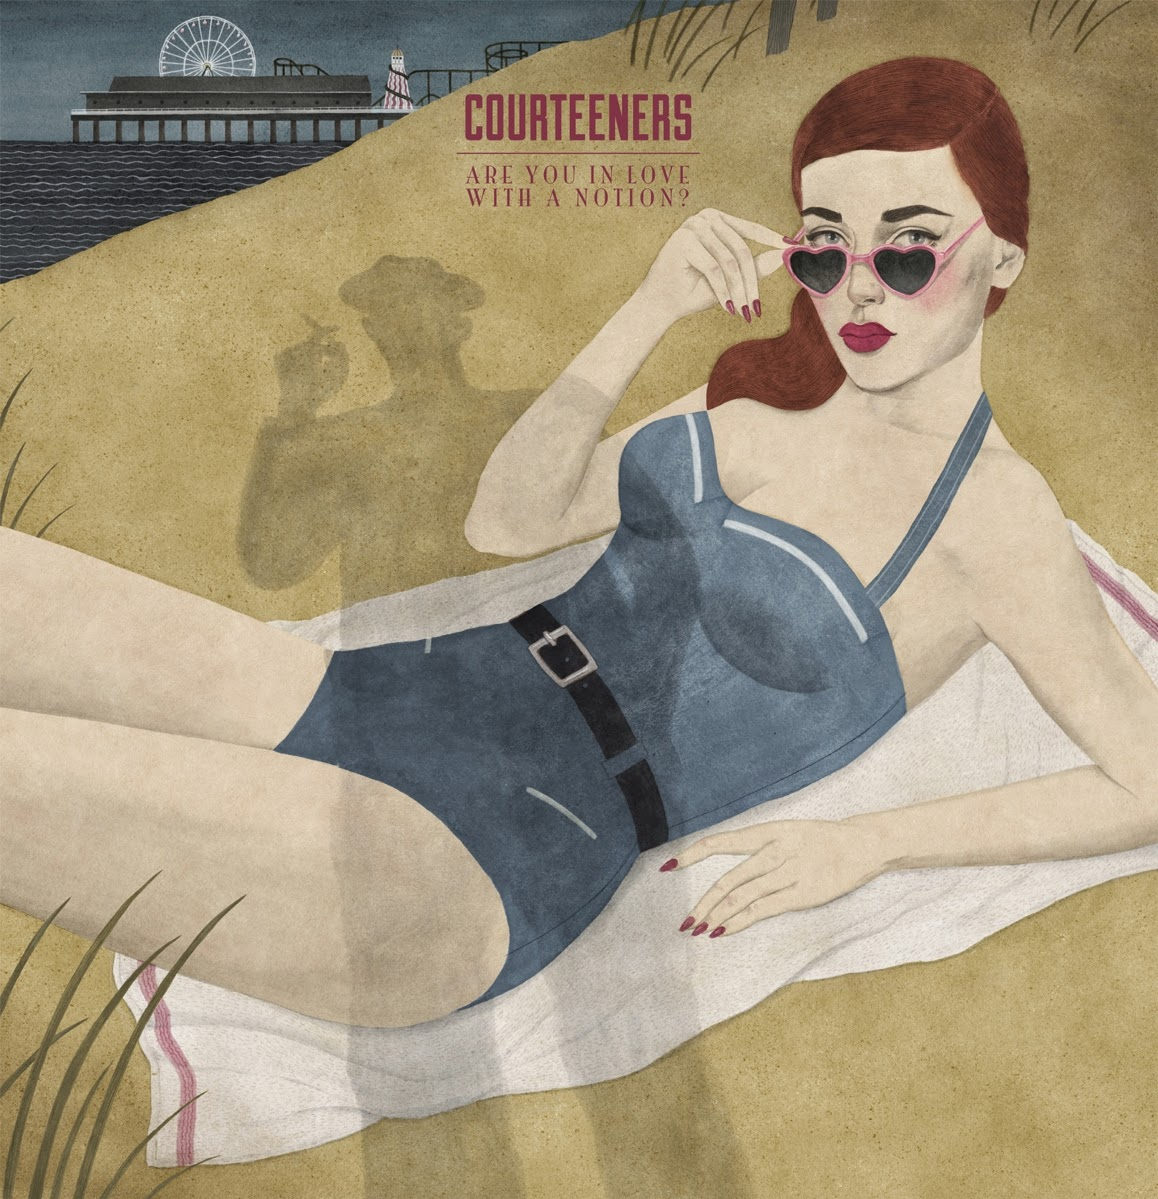 Courteeners announce new single Are You In Love With A Notion?